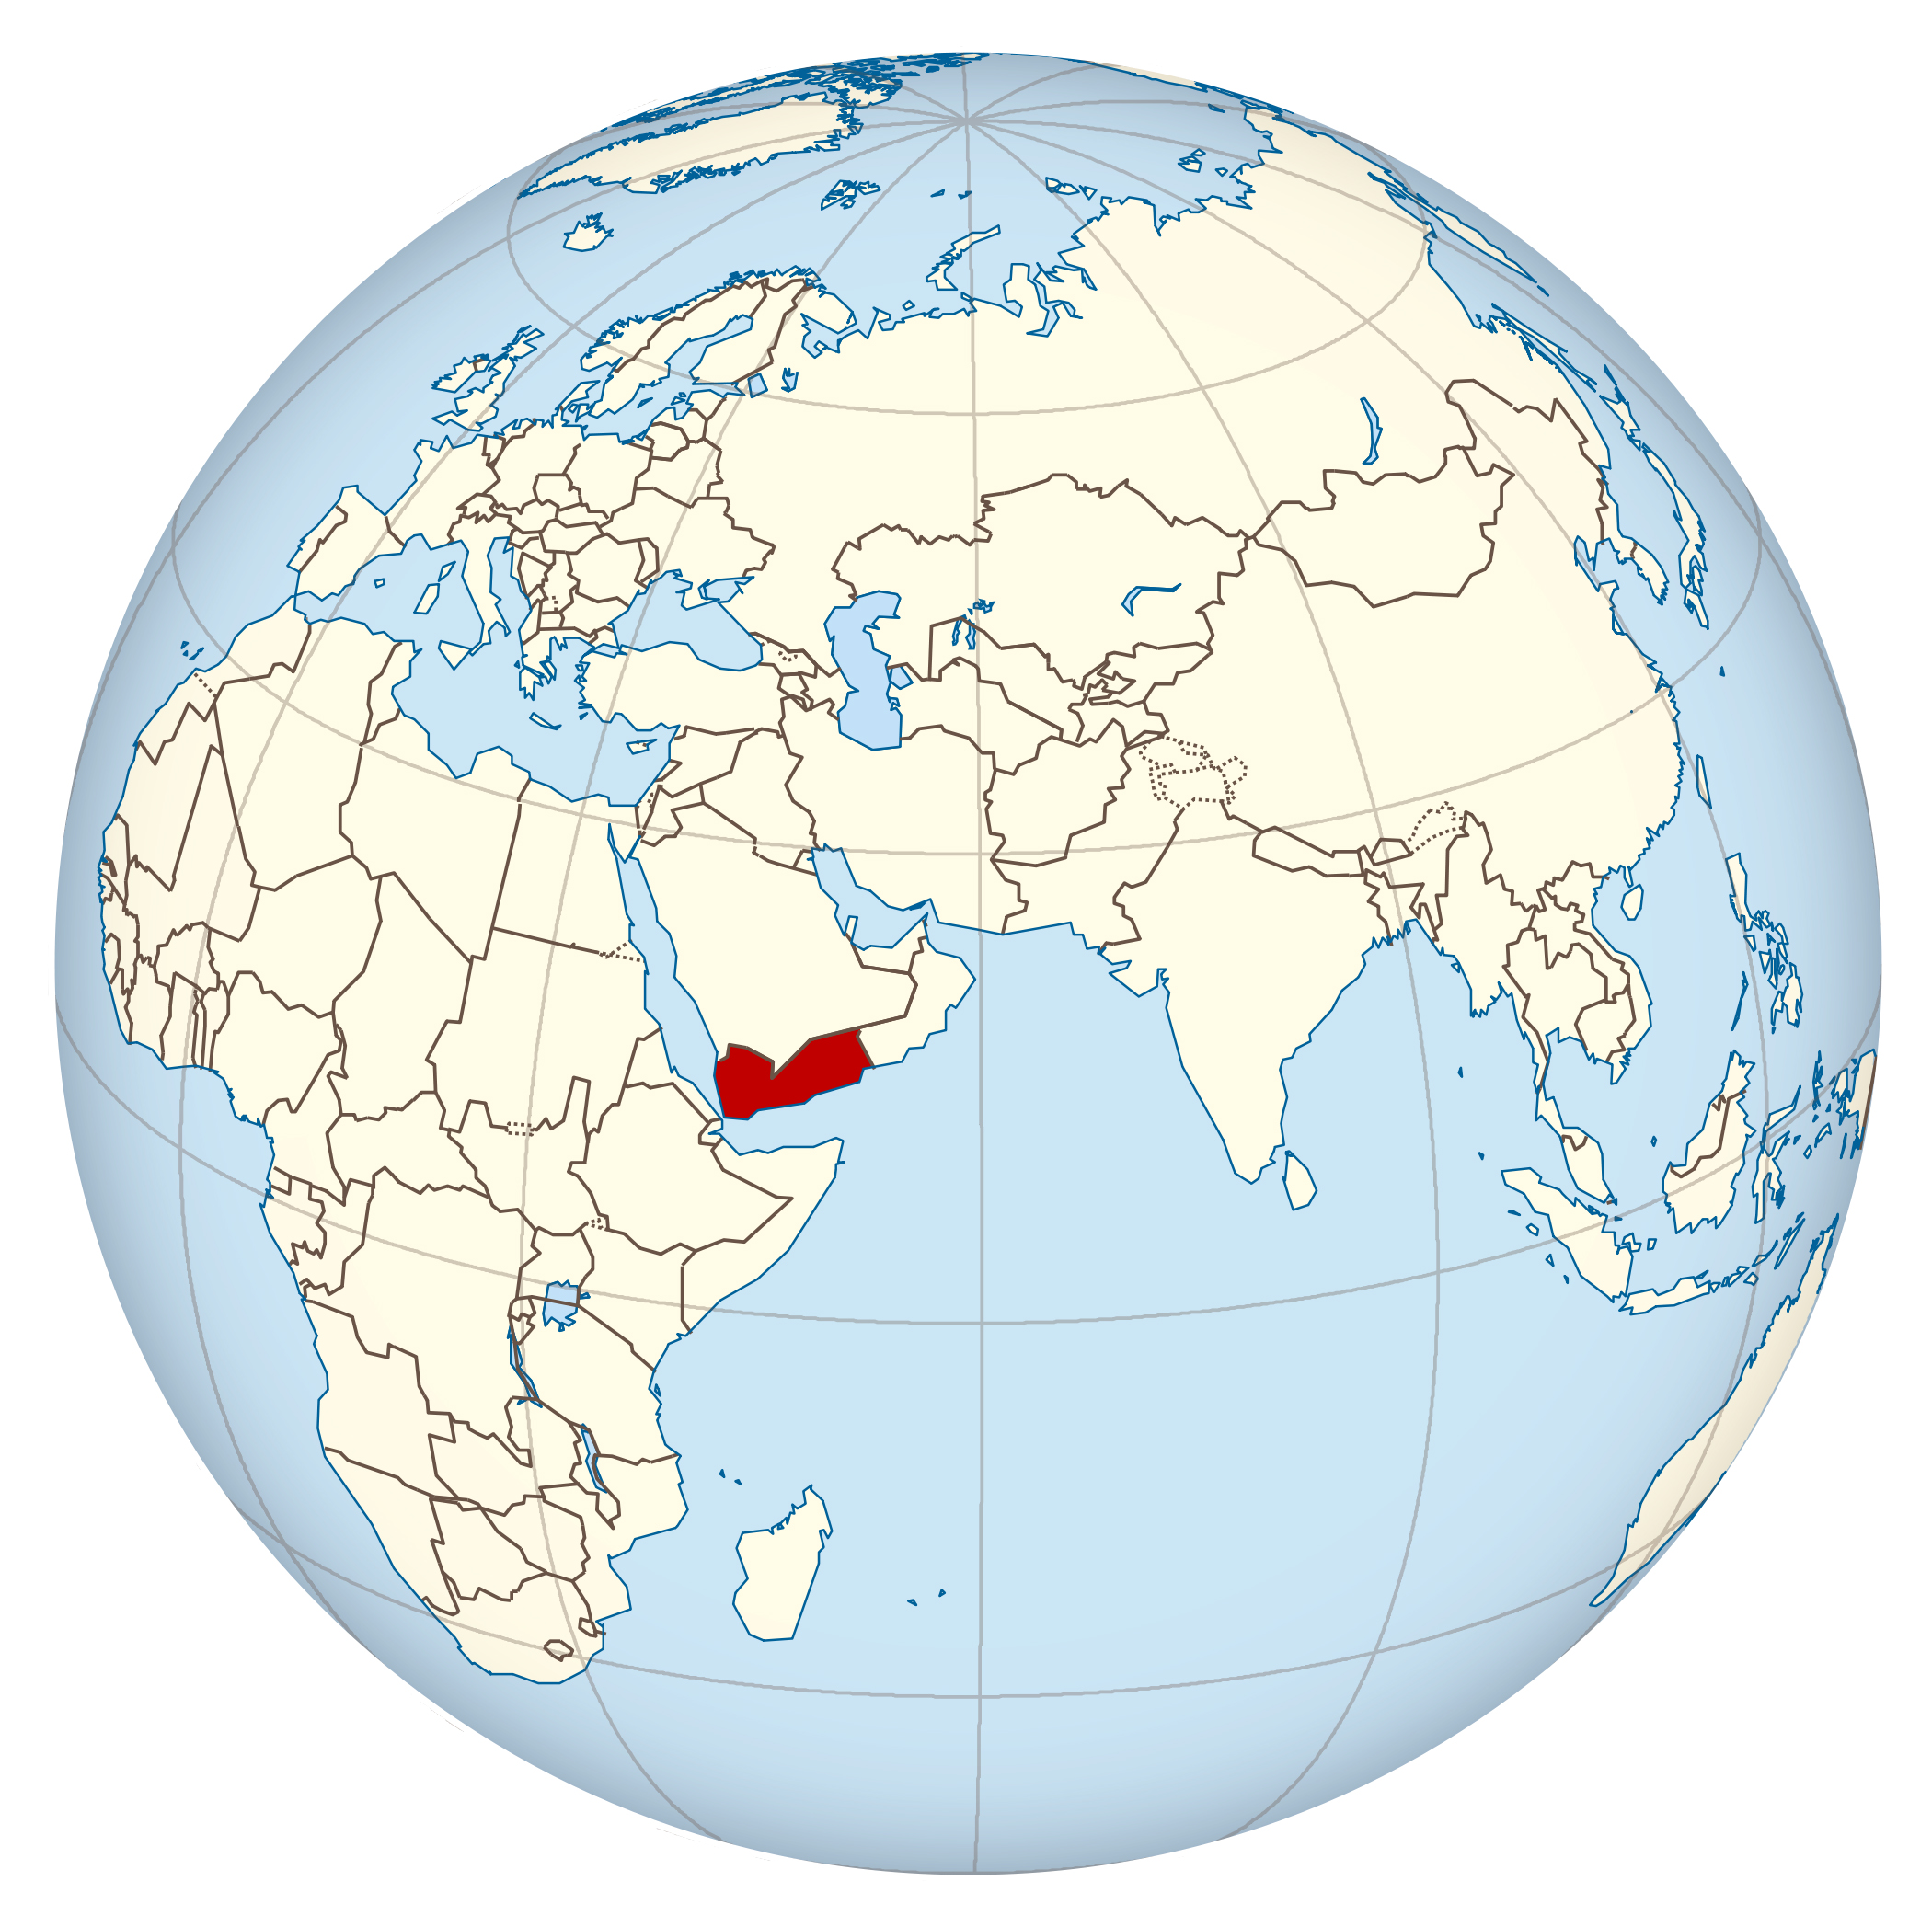 Location Of Yemen On World Map.Large Location Map Of Yemen Yemen Asia Mapsland Maps Of The